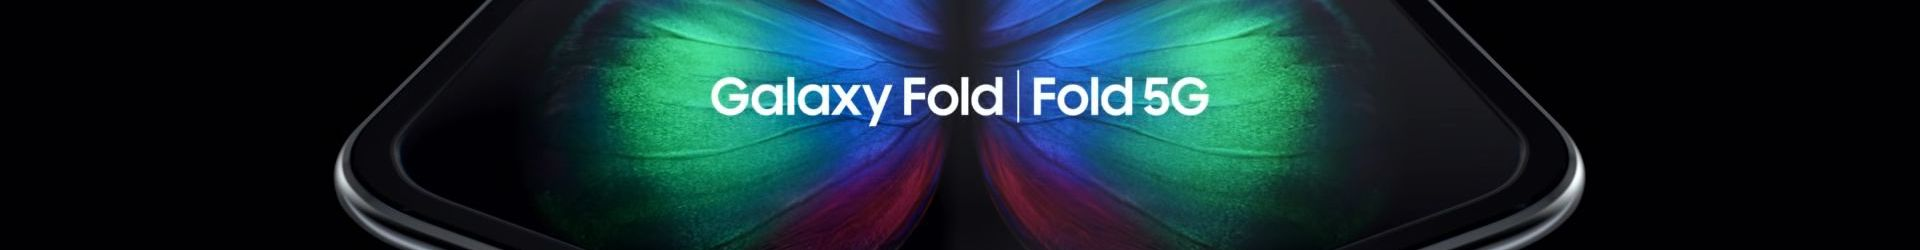 Galaxy Fold disponibile da domani in Corea: Alleluja! Ma…